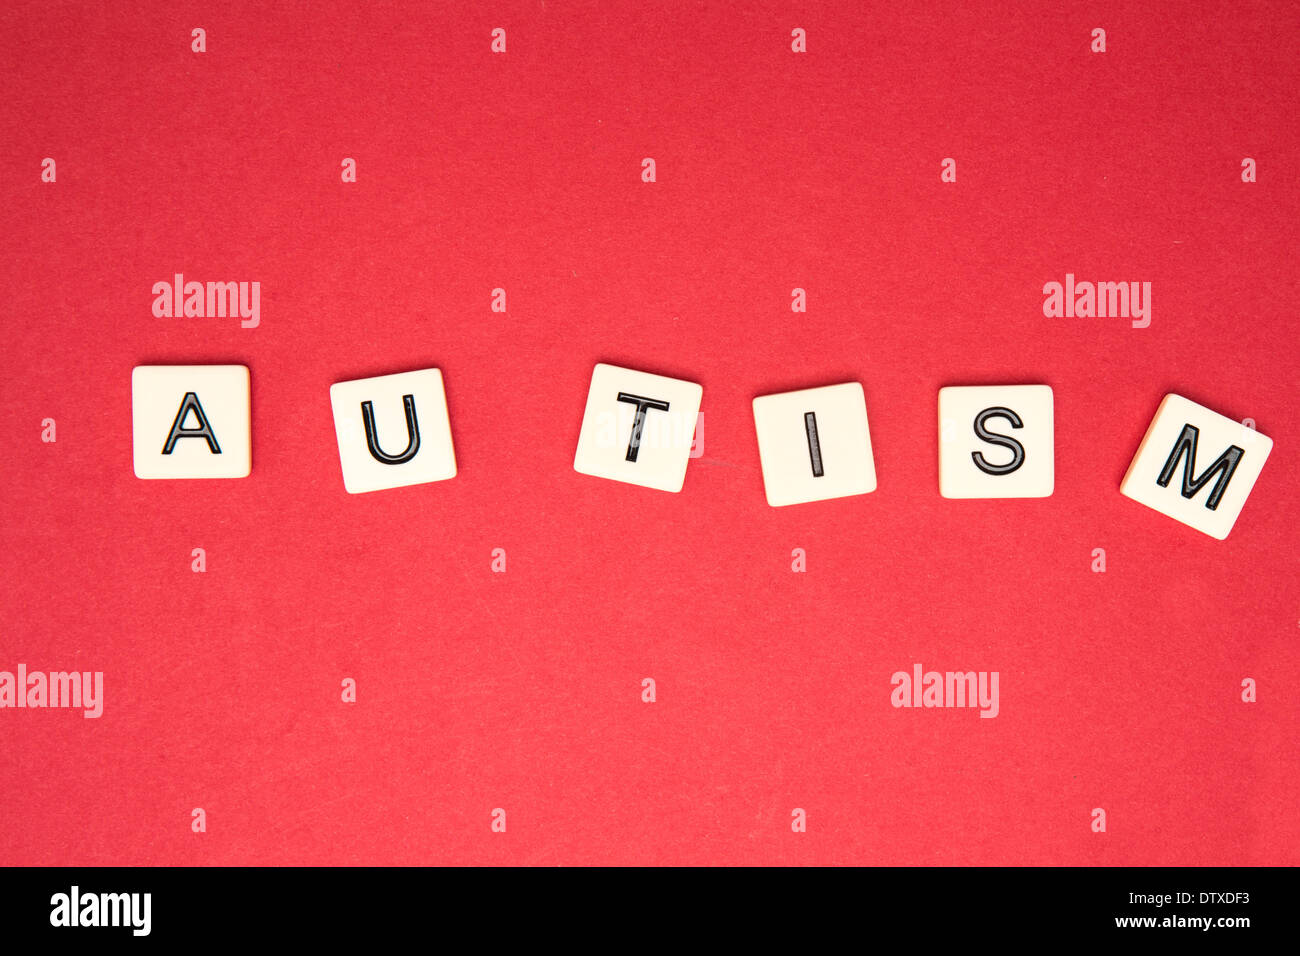 Autism spelled out in letter piecesStock Photo